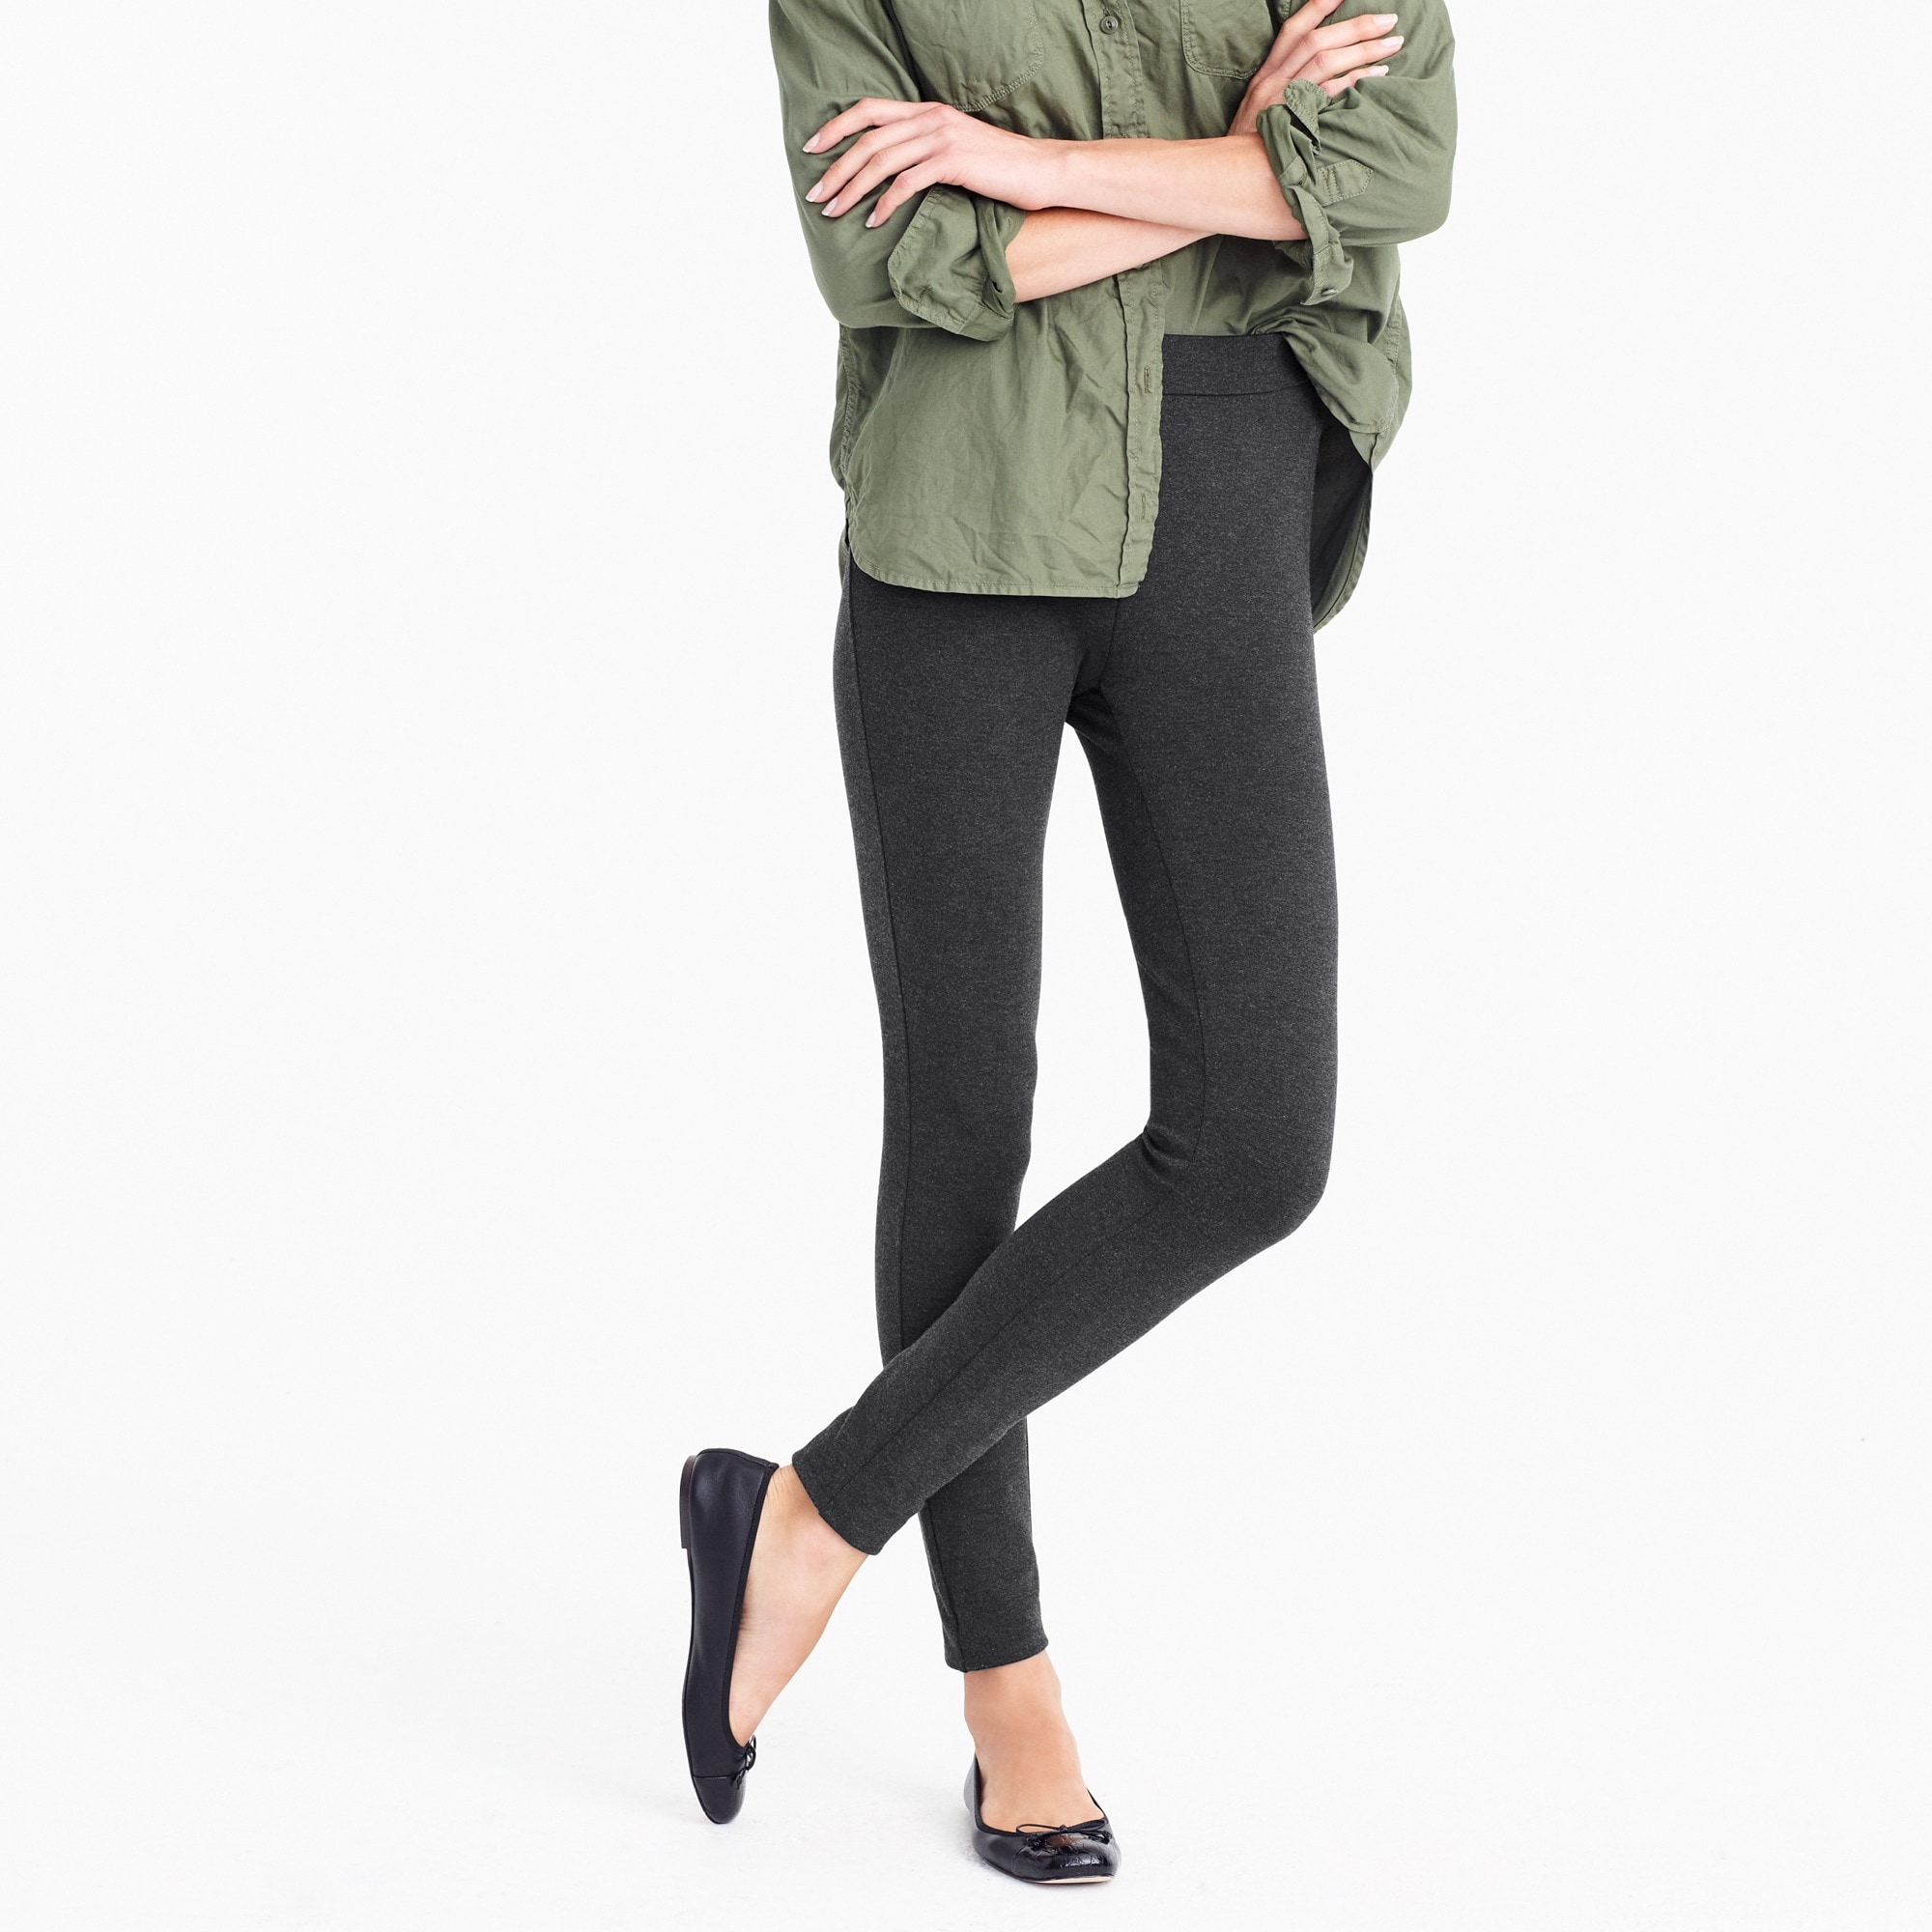 Image 1 for Any day pant in stretch ponte